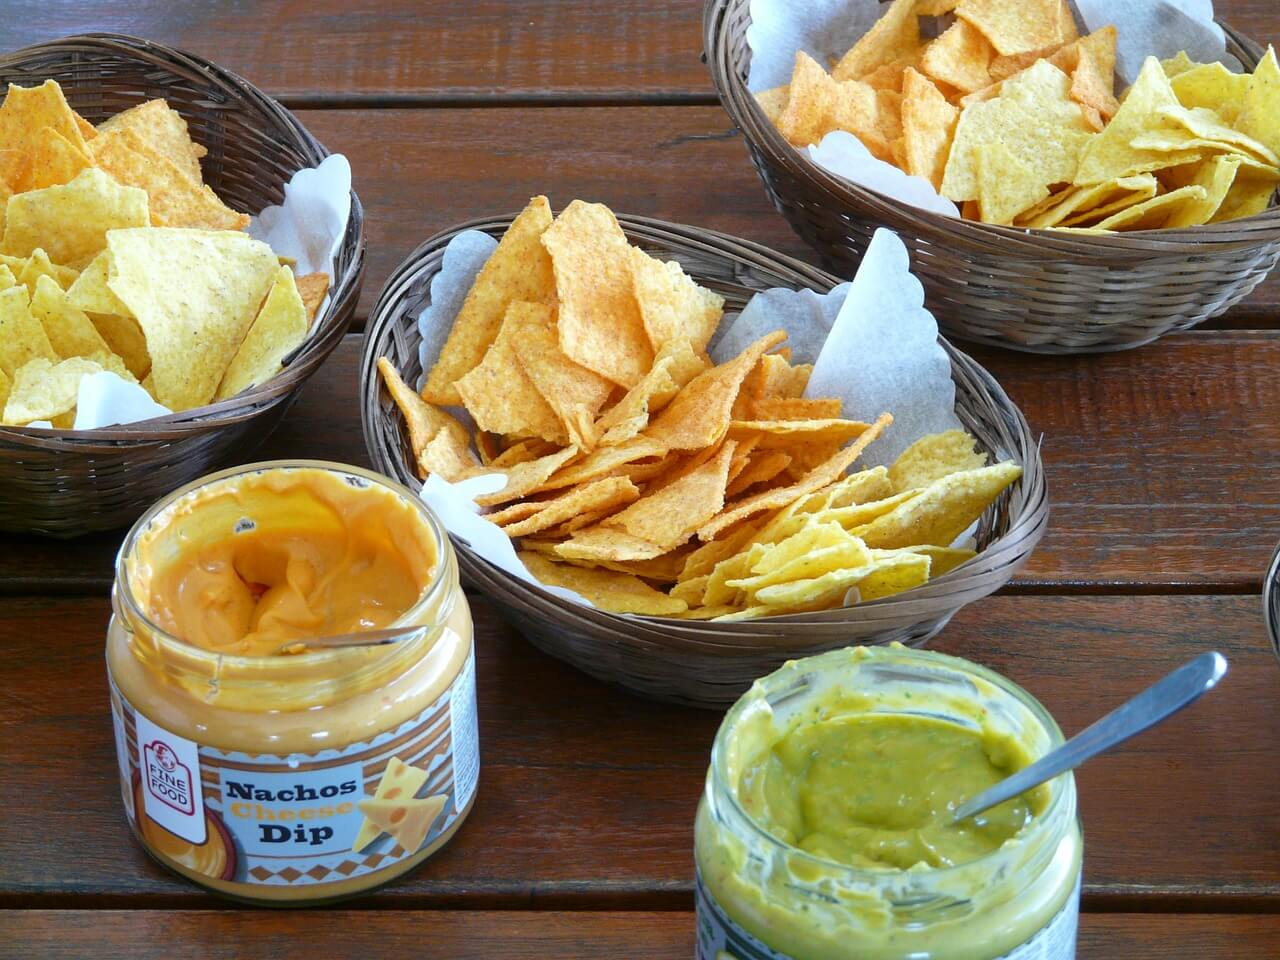 Things to Consider Before Buying Tortilla Chips